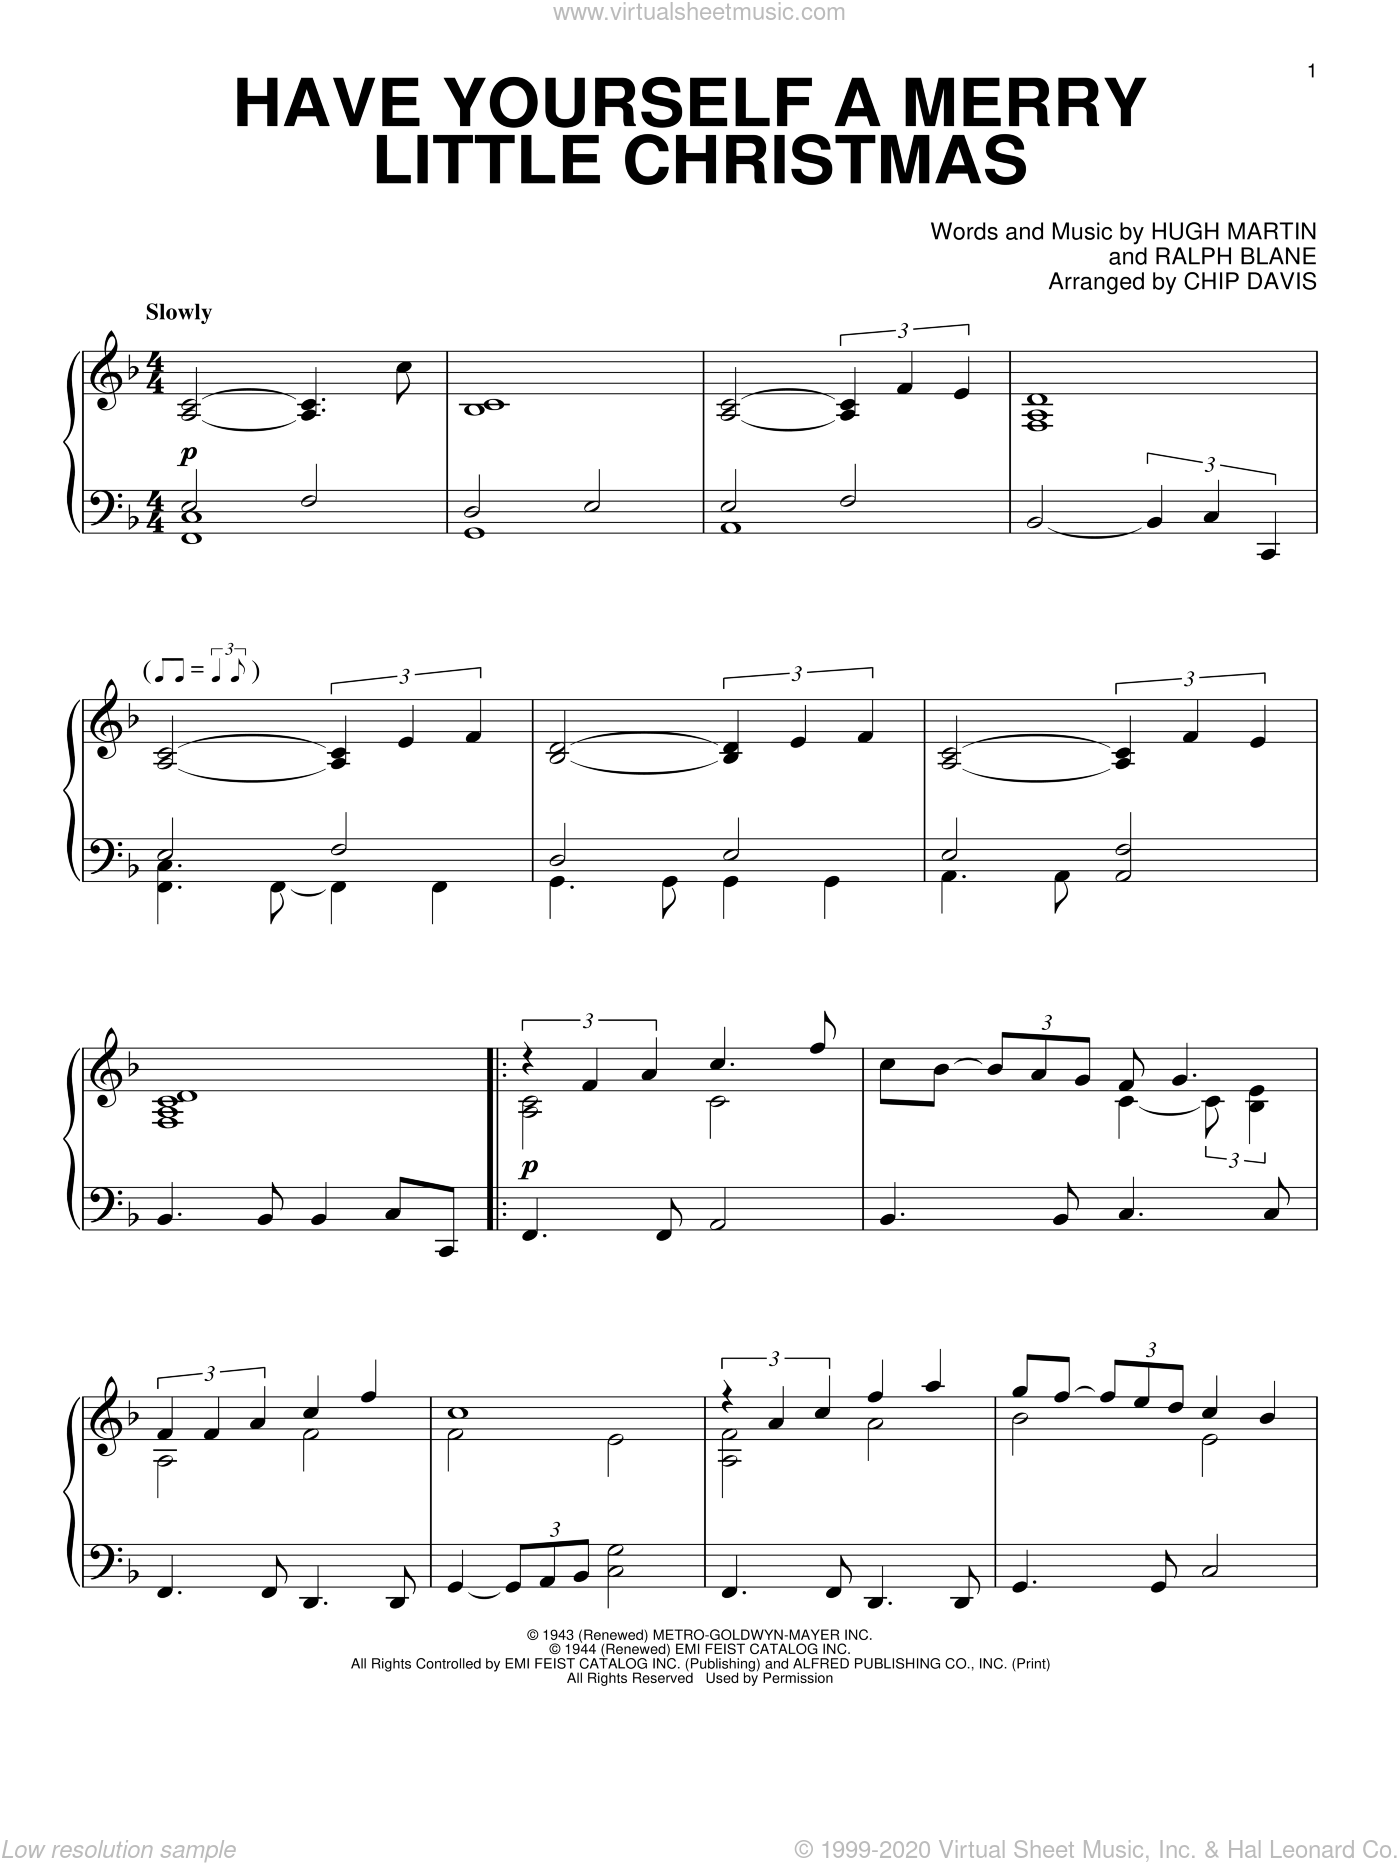 Have Yourself A Merry Little Christmas sheet music for piano solo by Mannheim Steamroller, Hugh Martin and Ralph Blane, intermediate skill level